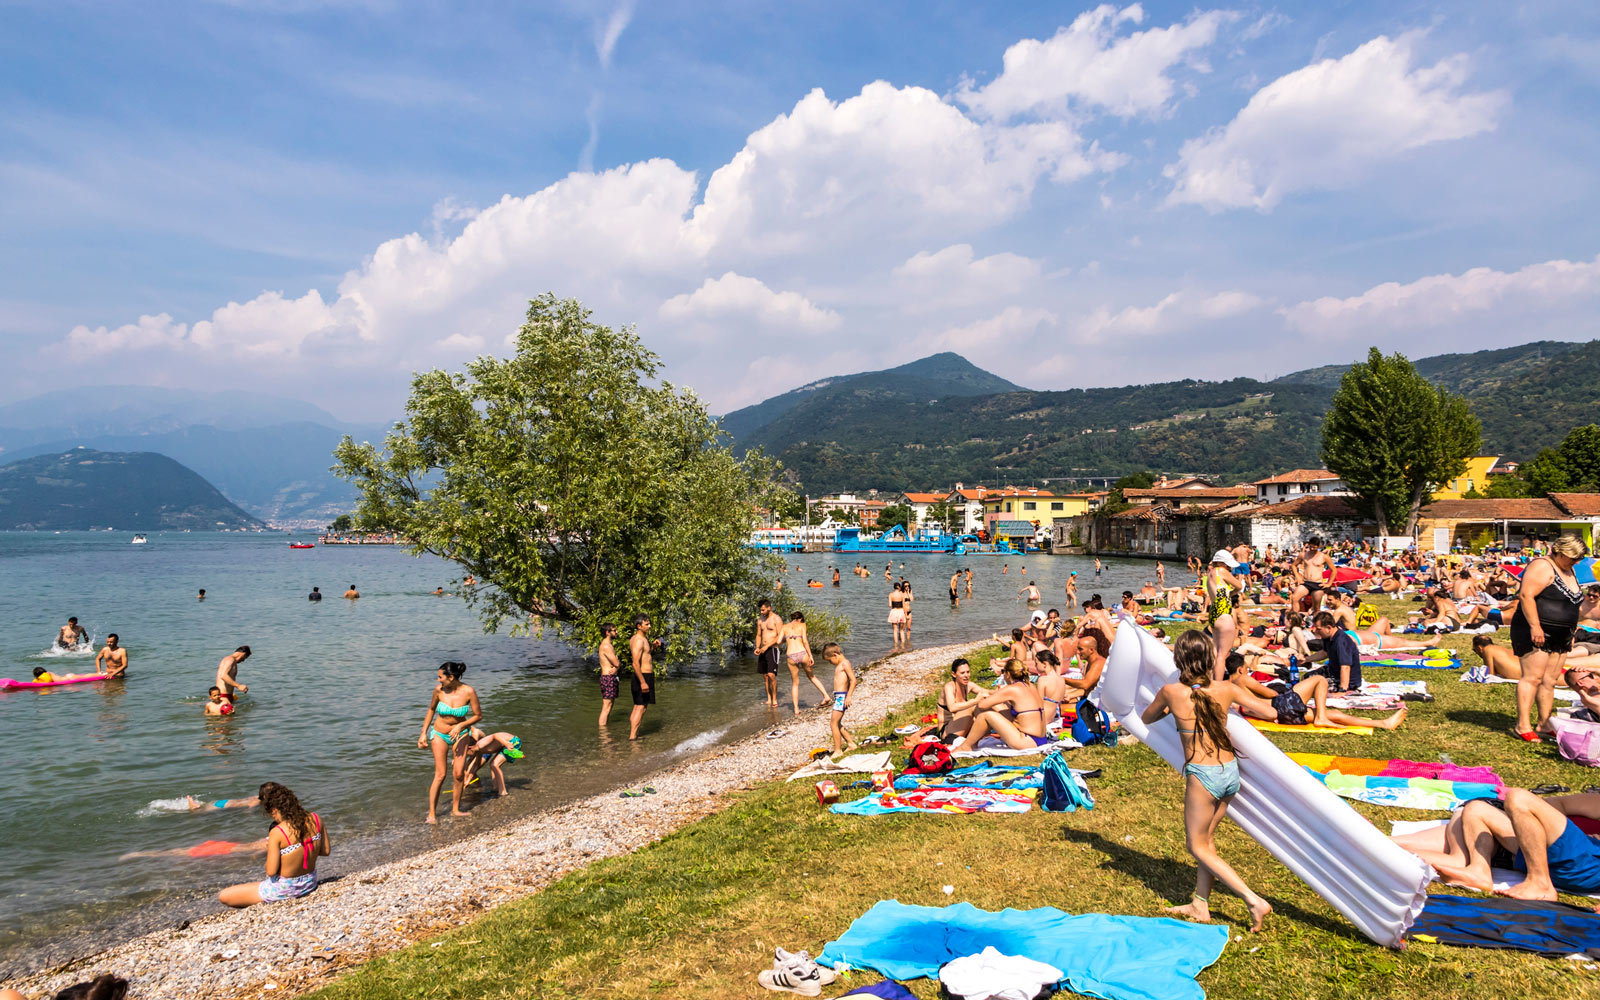 A crowded beach on Lake Iseo